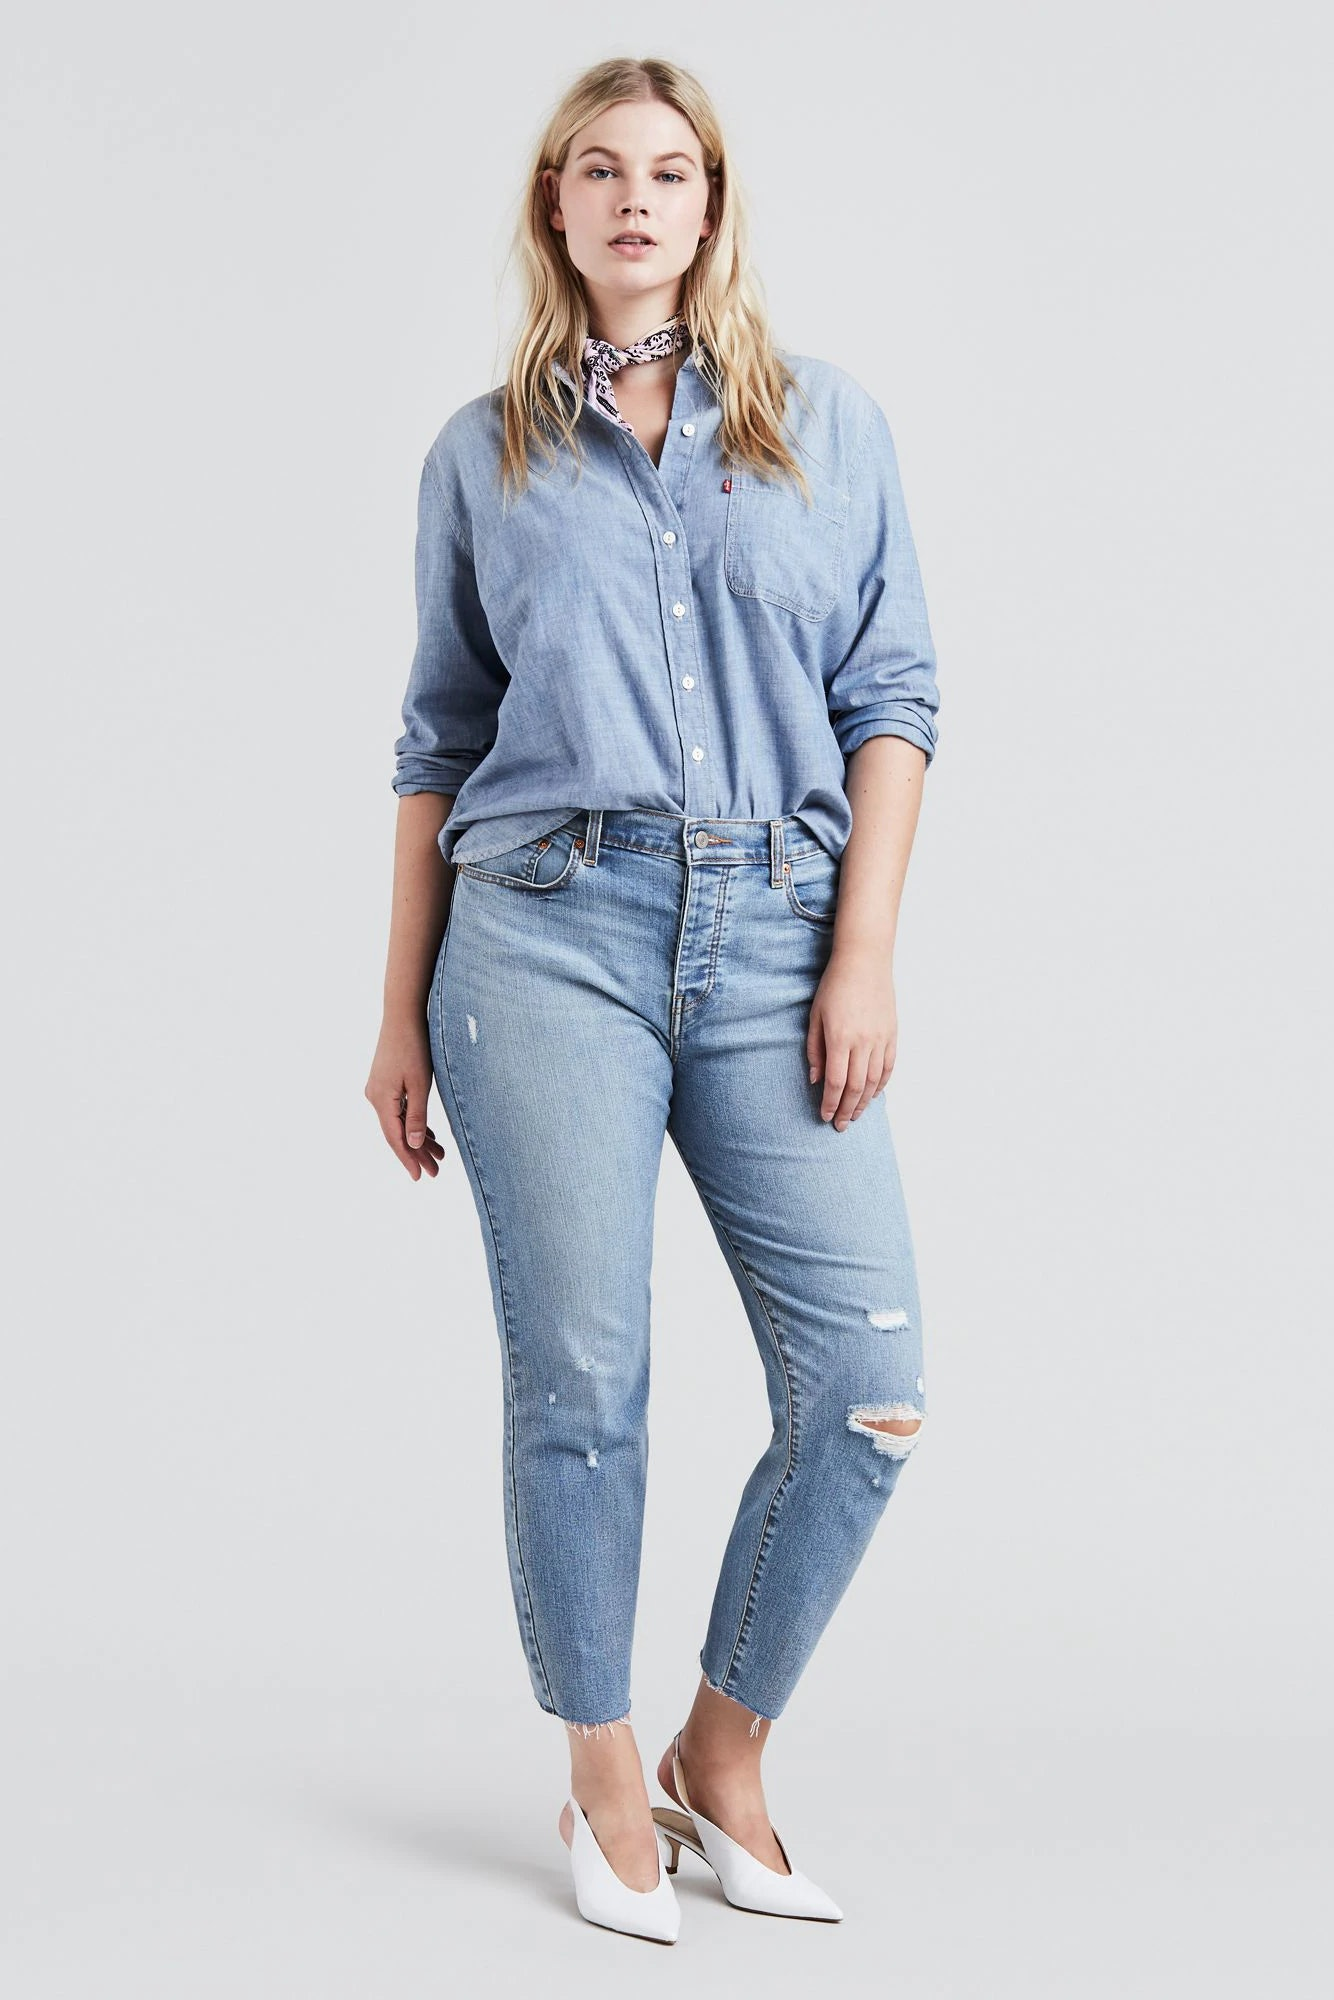 4f265b8789 The Best Plus-Size Jeans According To 8 Fashion Influencers